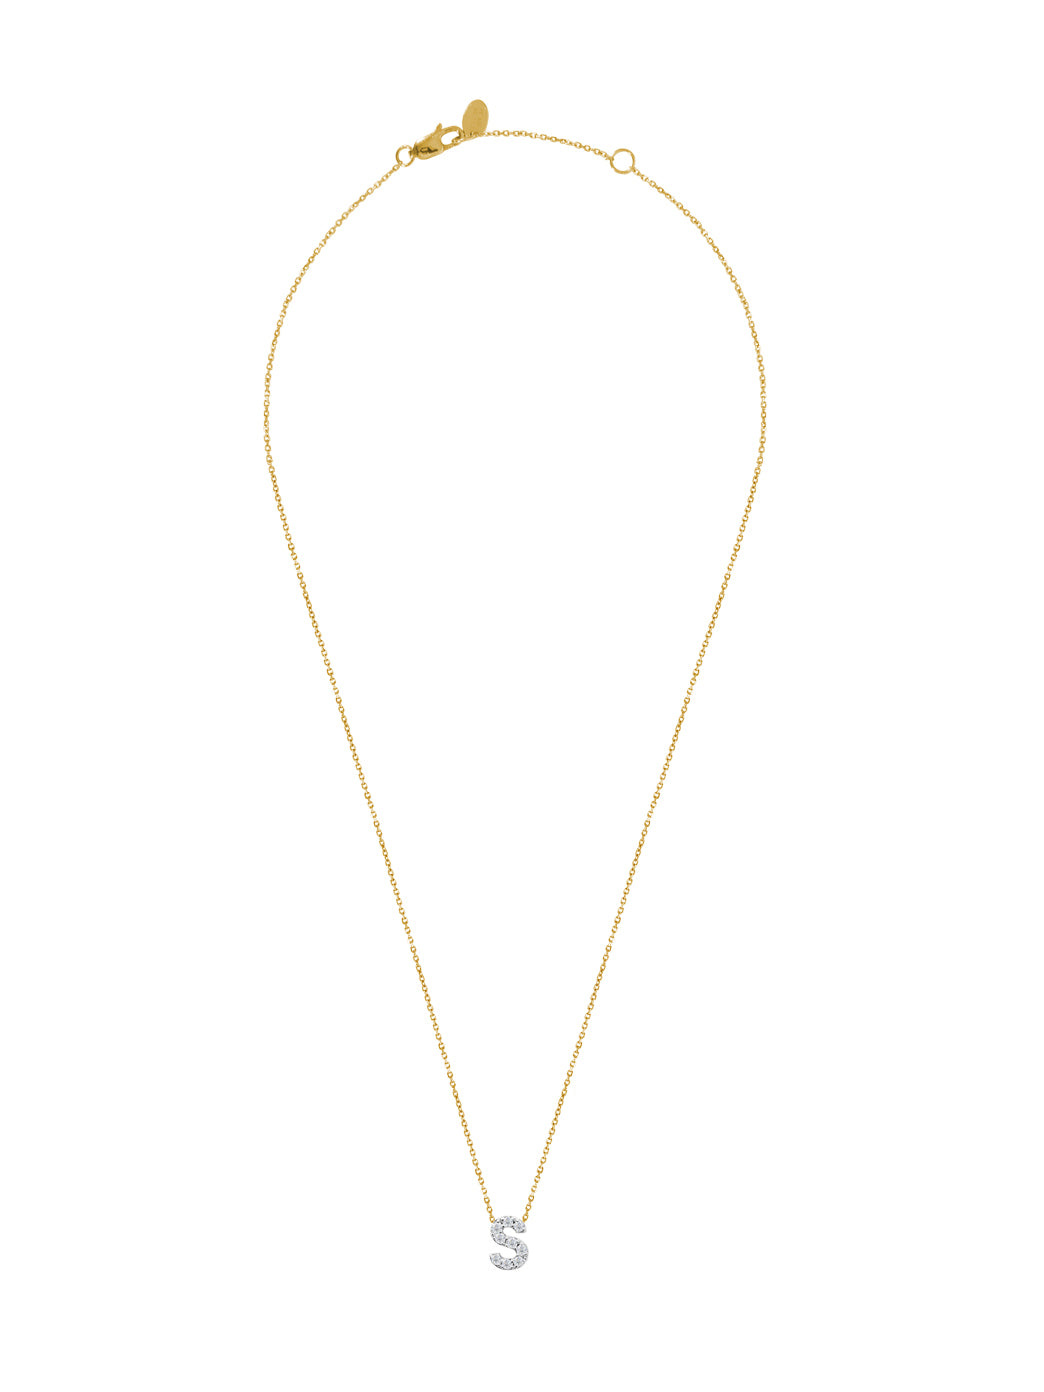 Fiorina Jewellery Diamond Alphabet Street Necklaces Gold Chain S